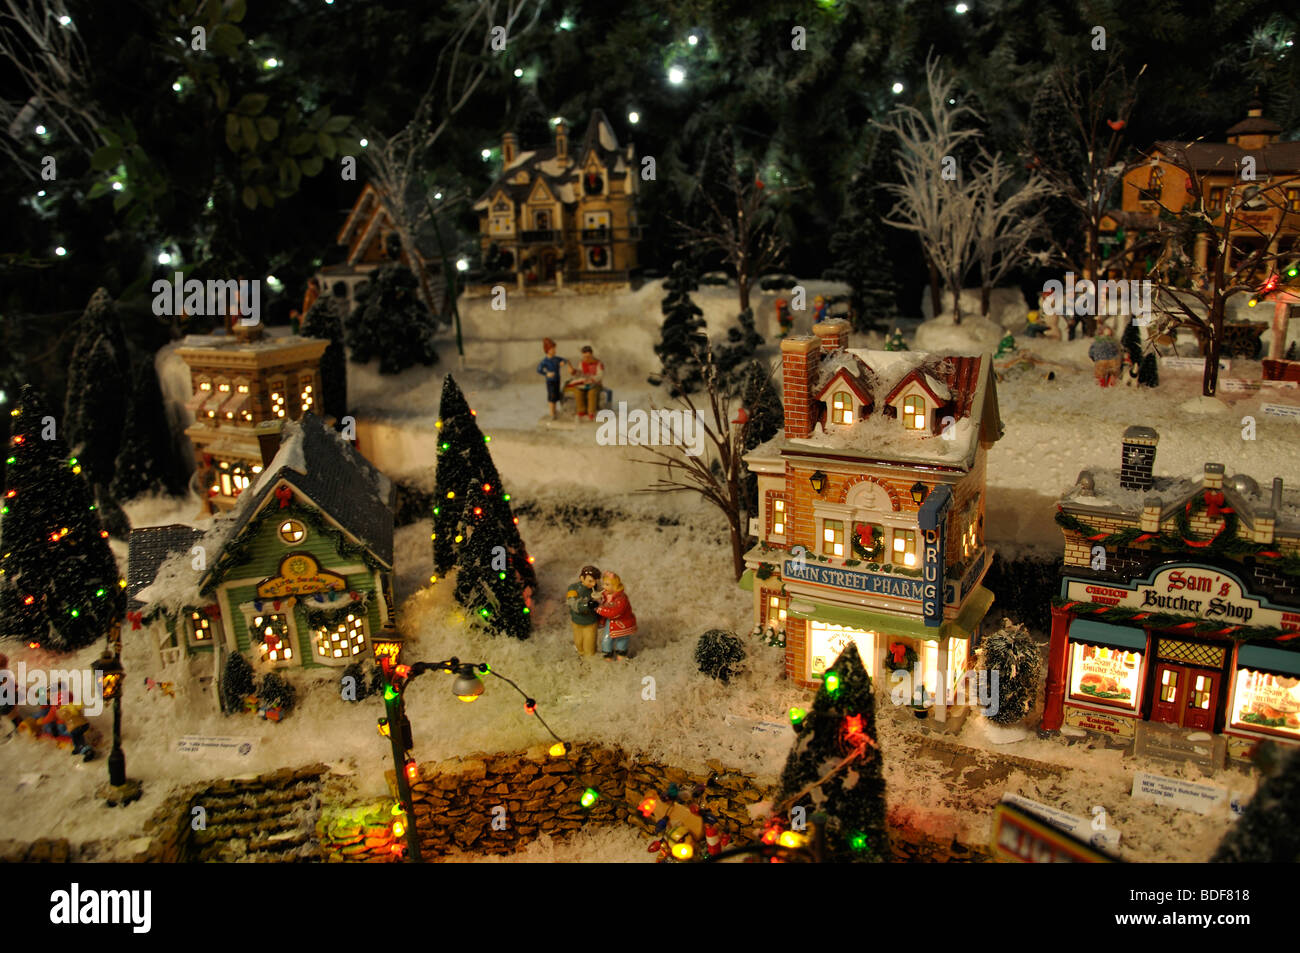 Village De Noel Decoration Miniature Christmas Village Toy Houses Decorations Stock